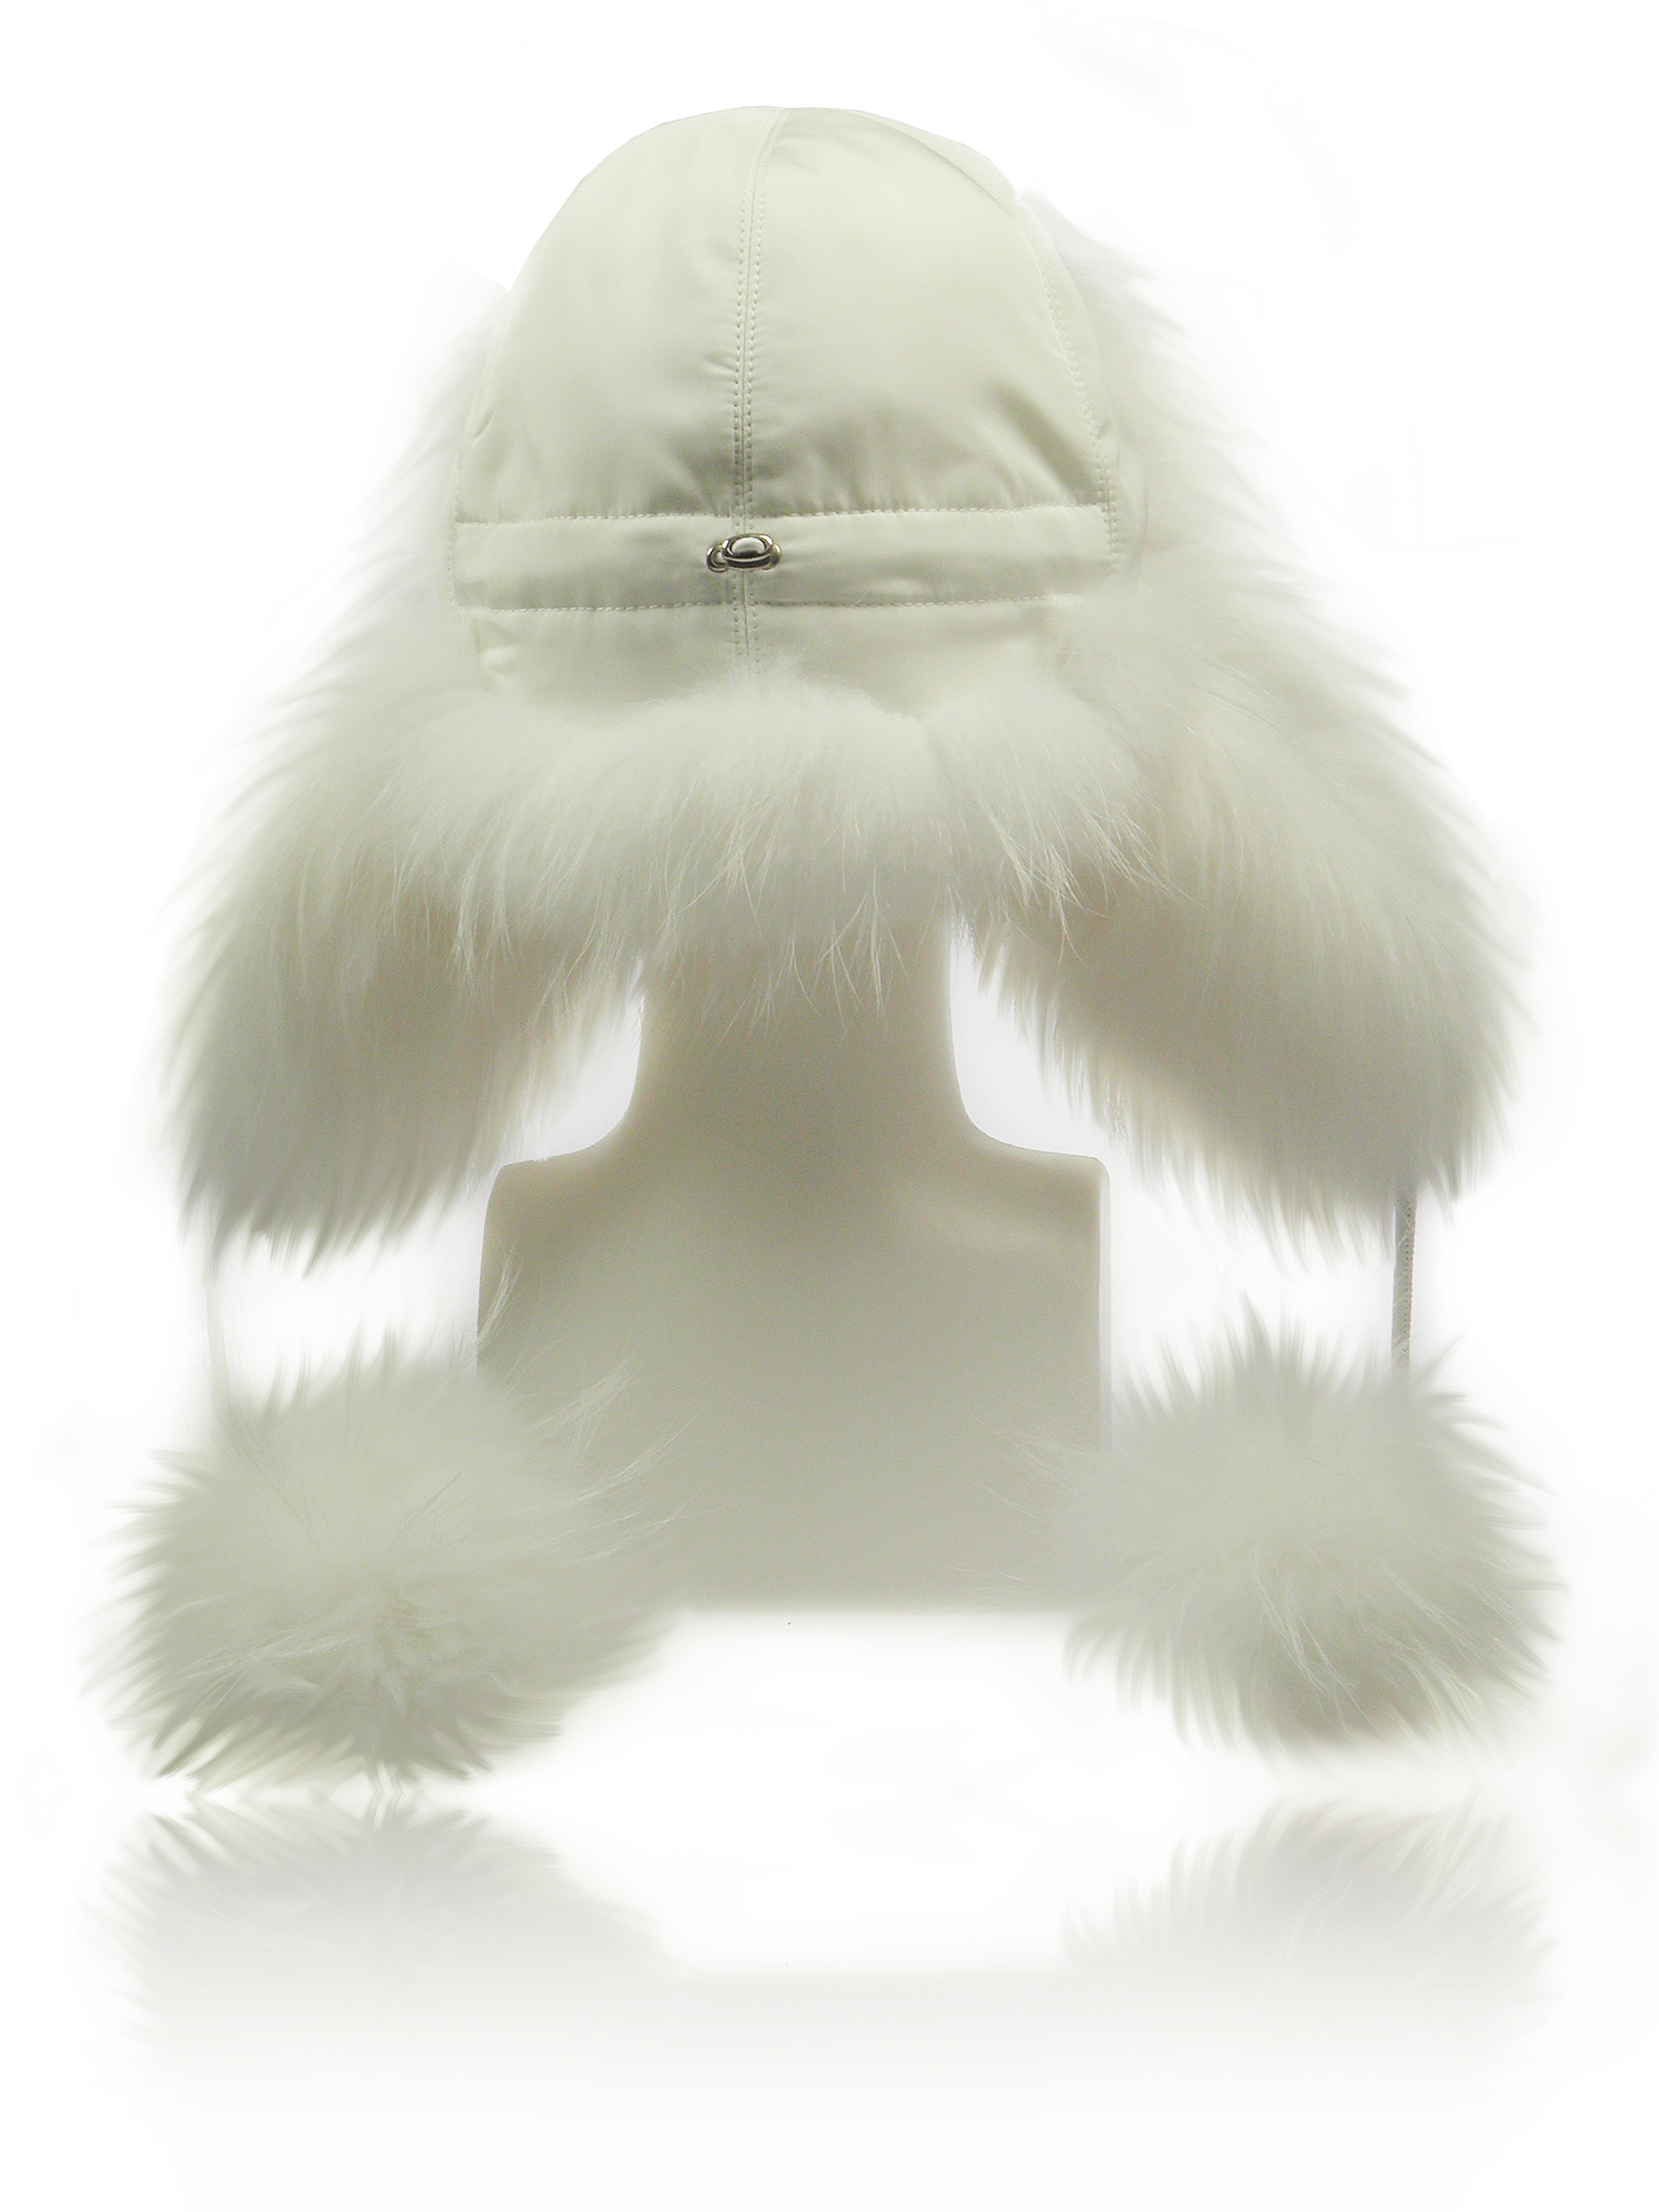 FurLand Aviator Cap - USHANKA WHITE RACCOON - with Pom Pom's